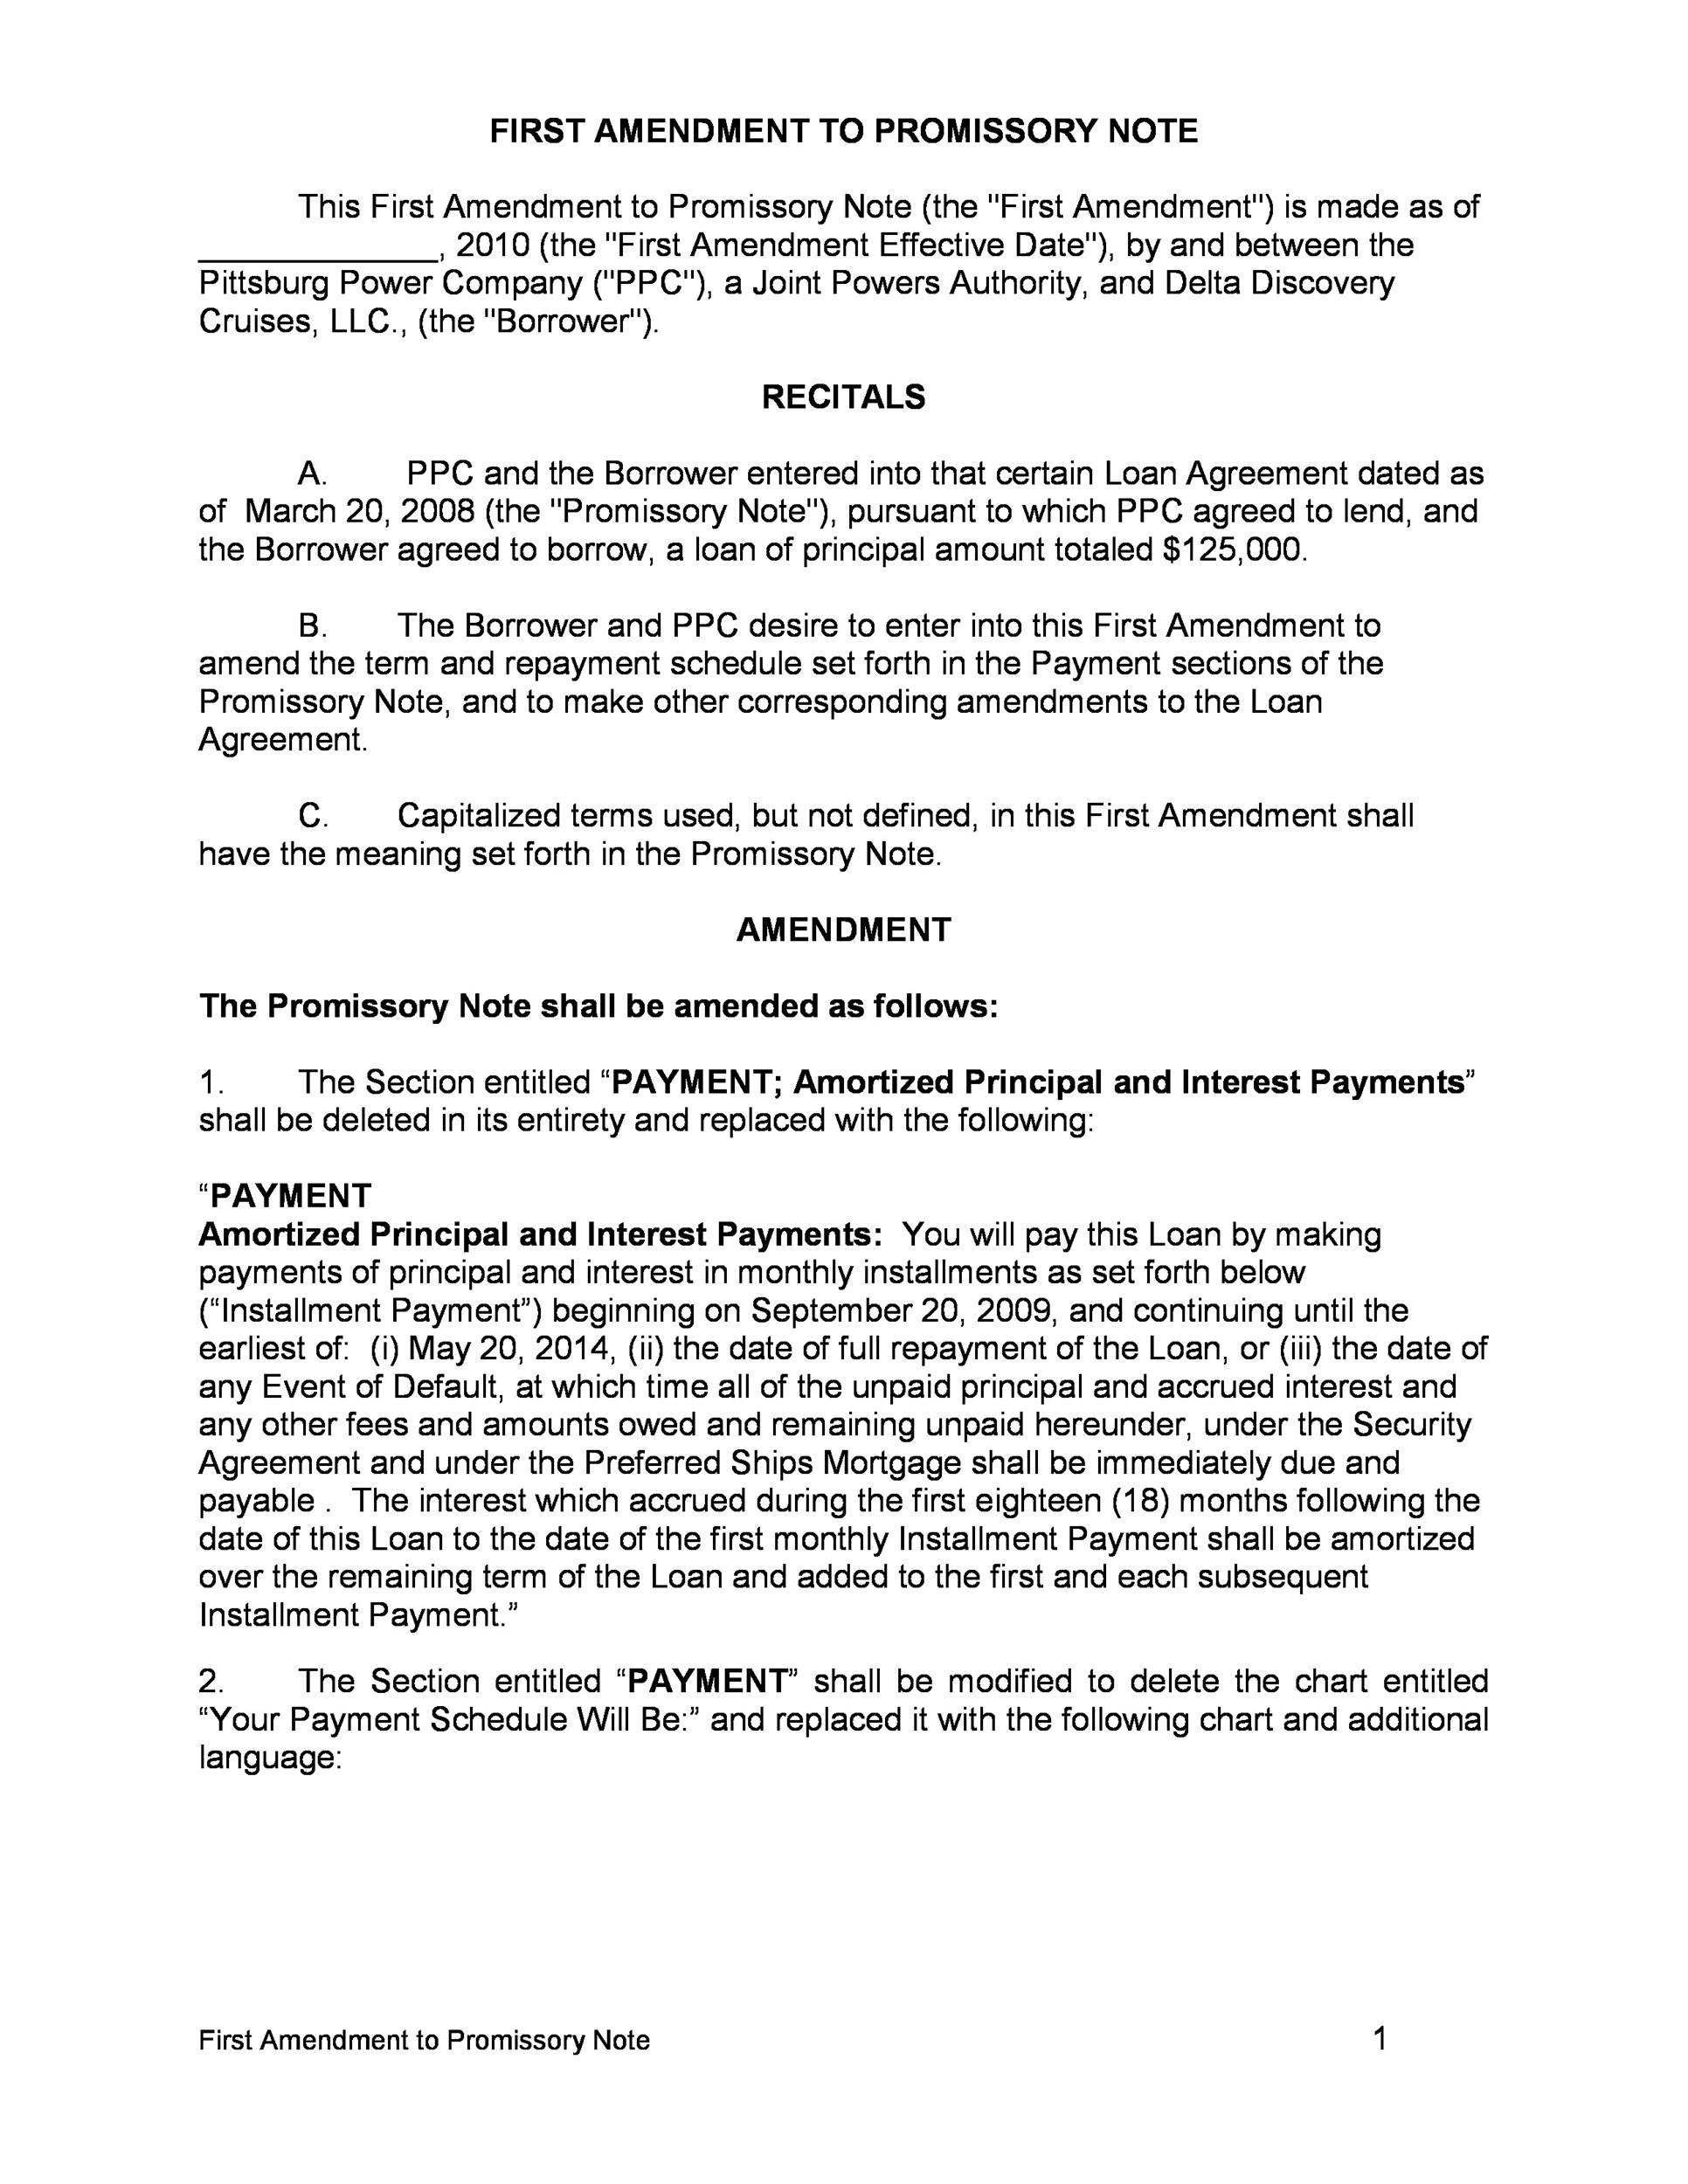 45 FREE Promissory Note Templates Forms Word PDF Template Lab – Template for a Promissory Note